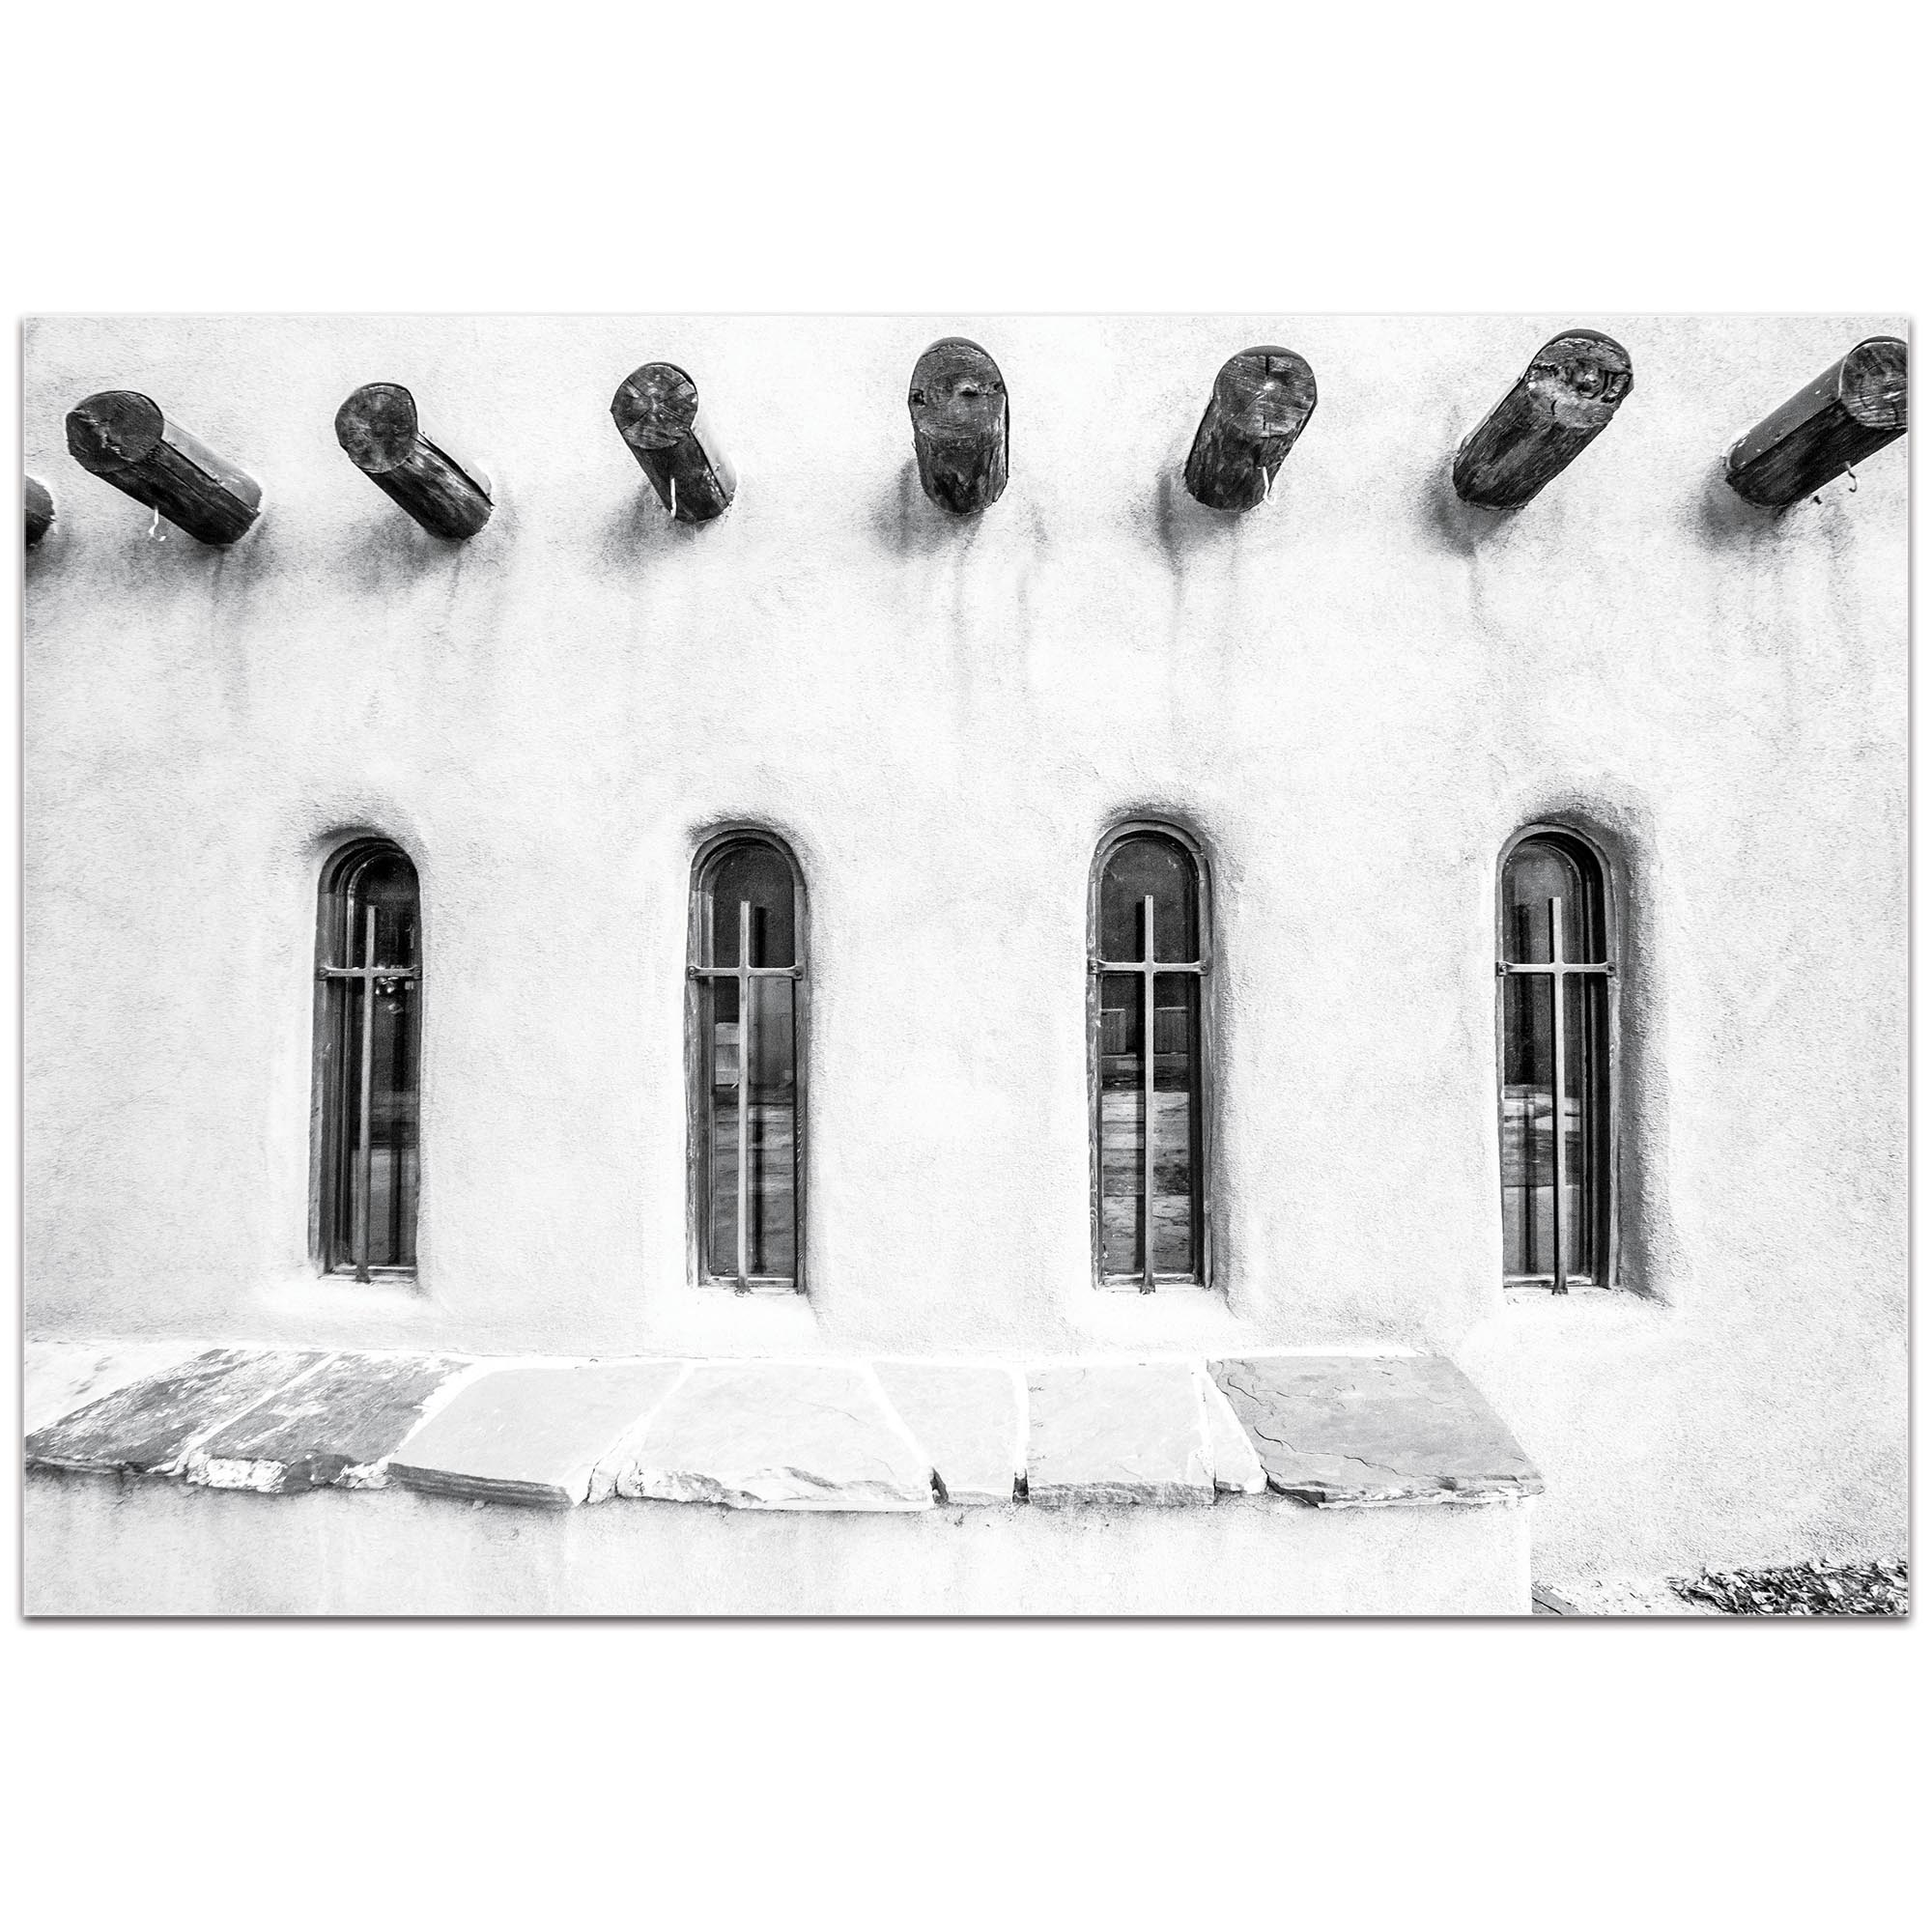 Eclectic Wall Art 'Holy Windows' - Architecture Decor on Metal or Plexiglass - Image 2